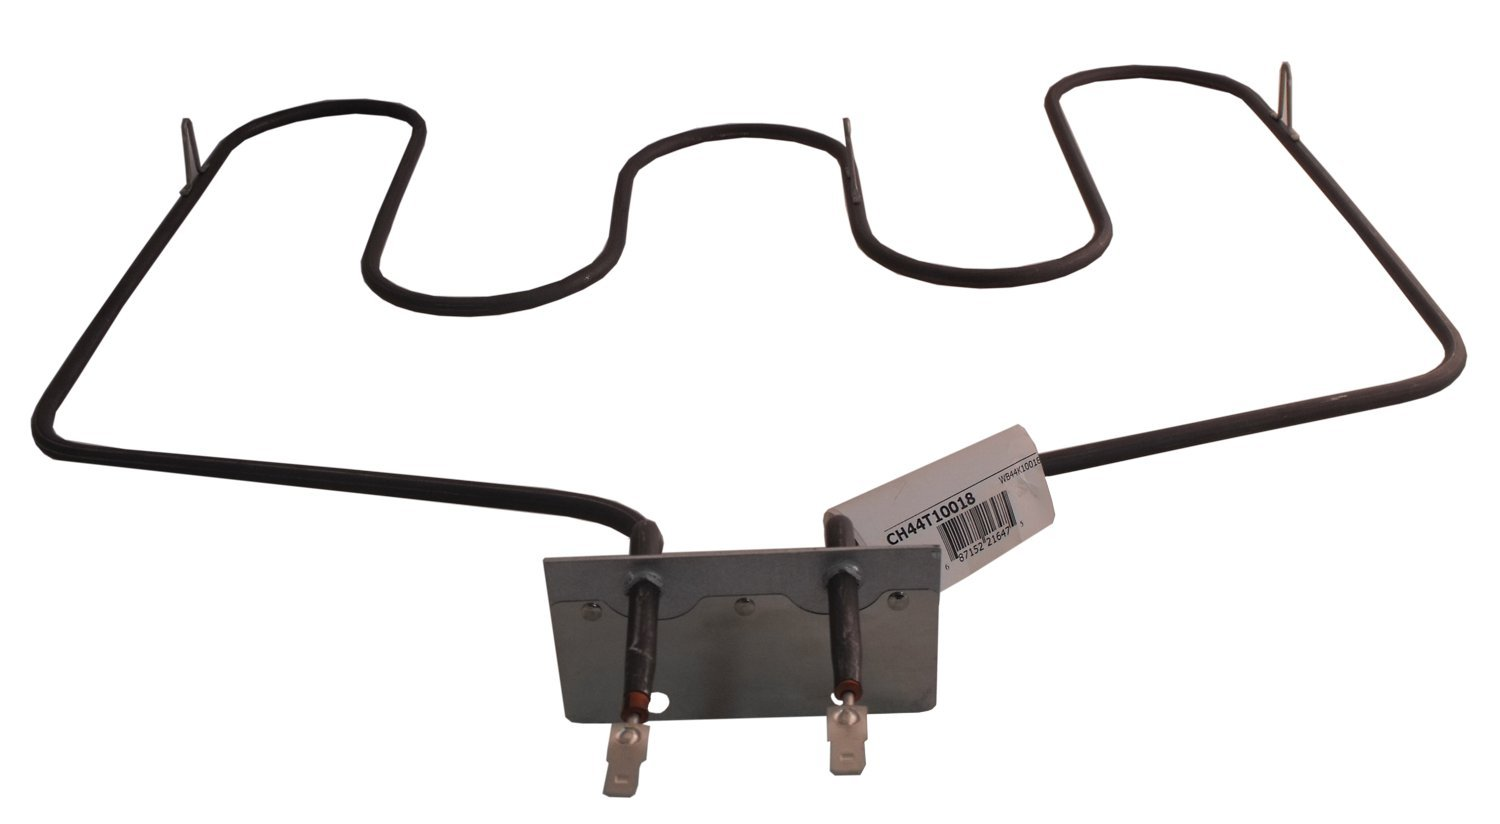 Supco CH44T10018 Lower Bake Heating Unit Element For GE WB44T10018, AP2031003, 876014, PS249293